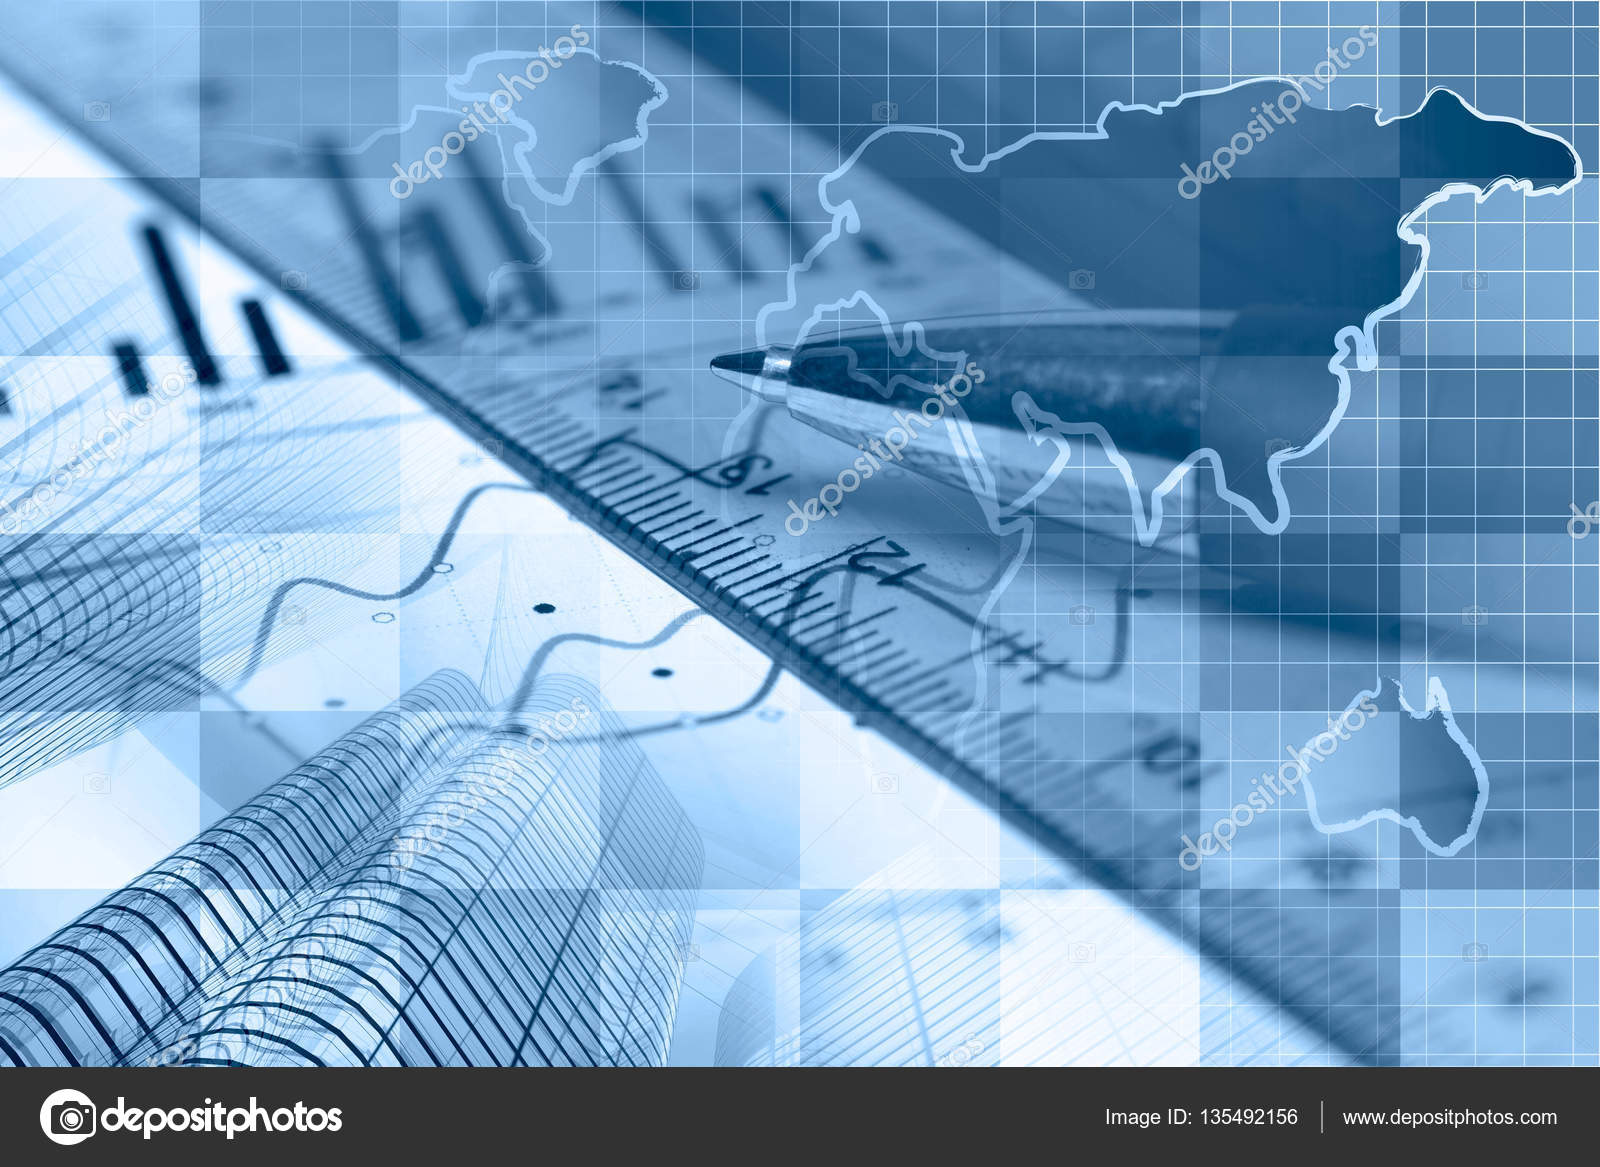 financial background in blues with map buildings graph and pen